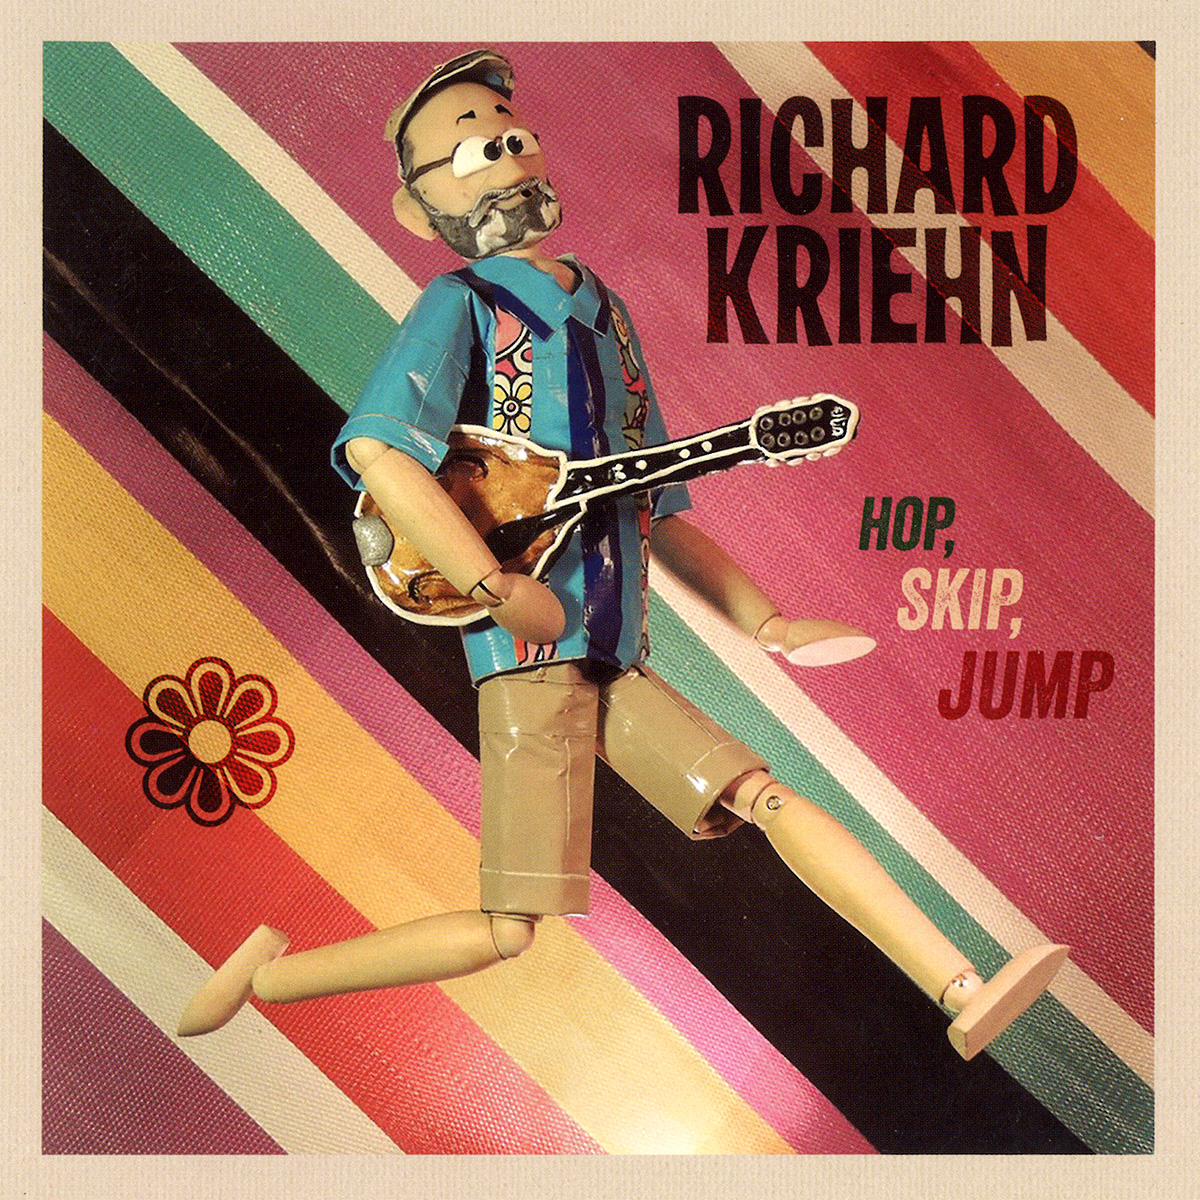 Richard Kriehn